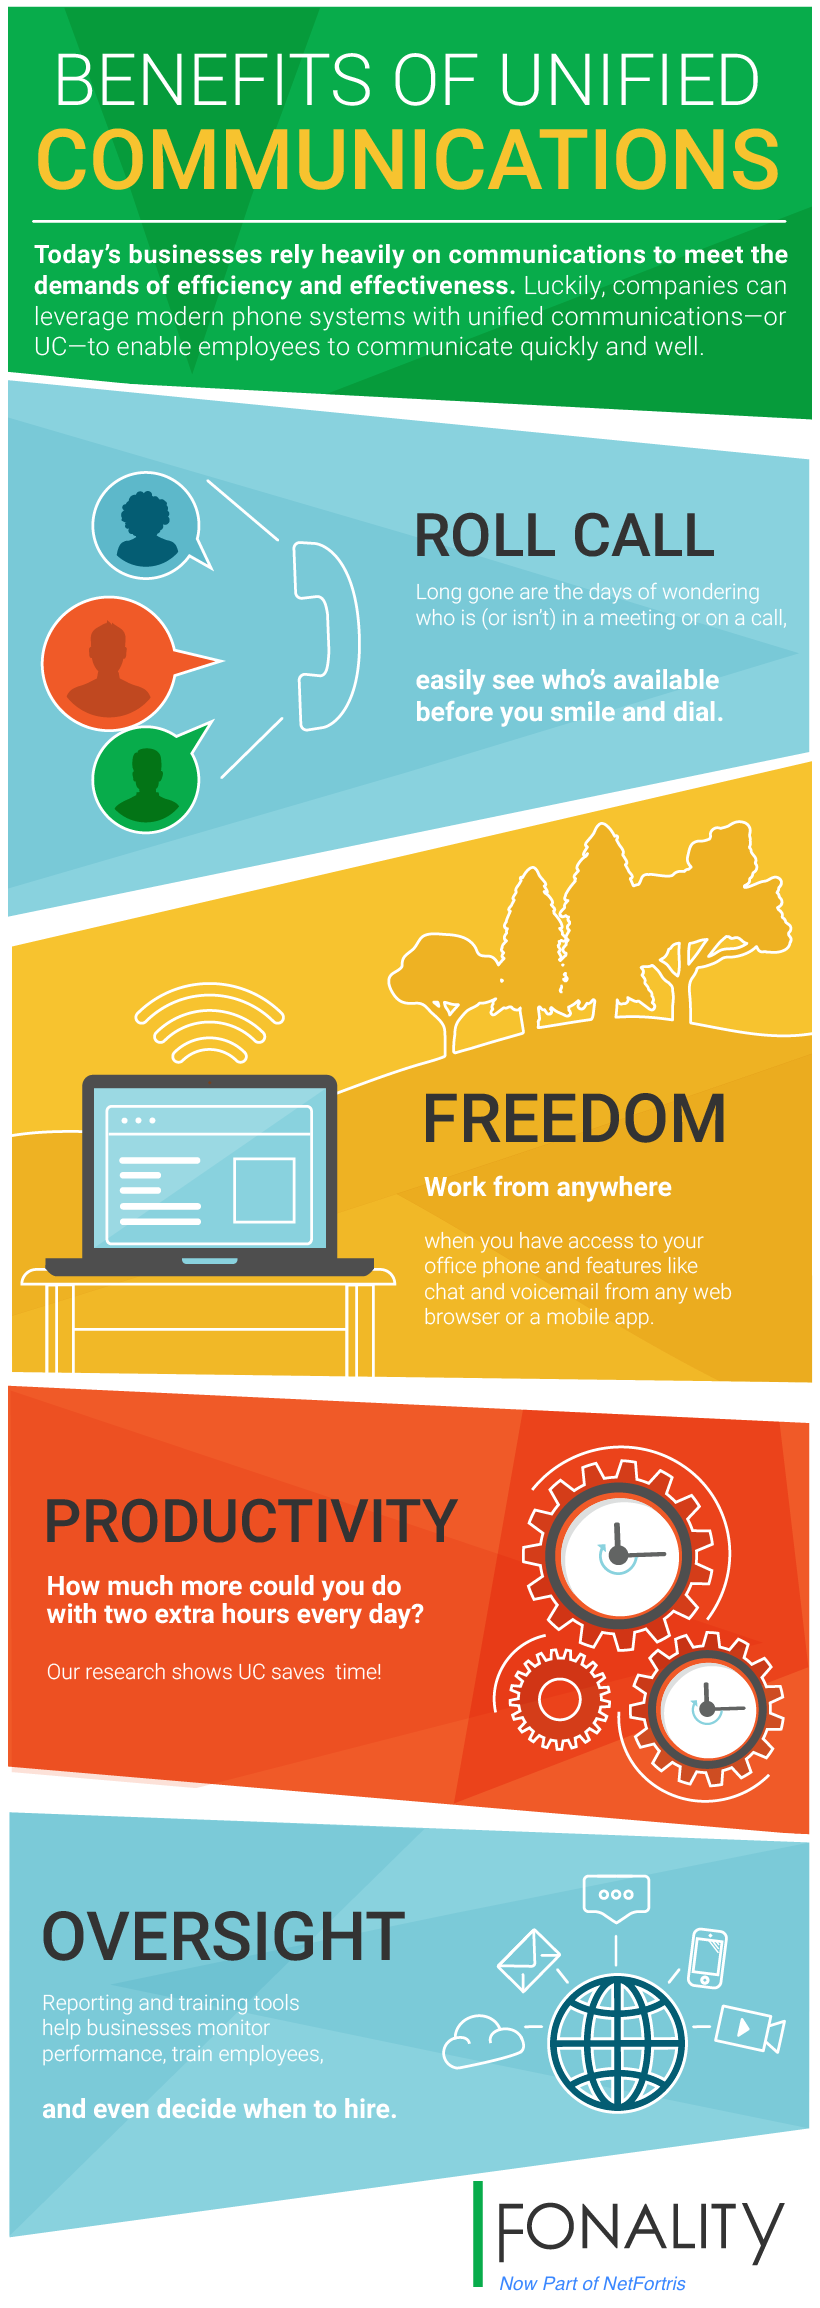 Fonality-Australia-Unified-Communication-Benefits-Infographic